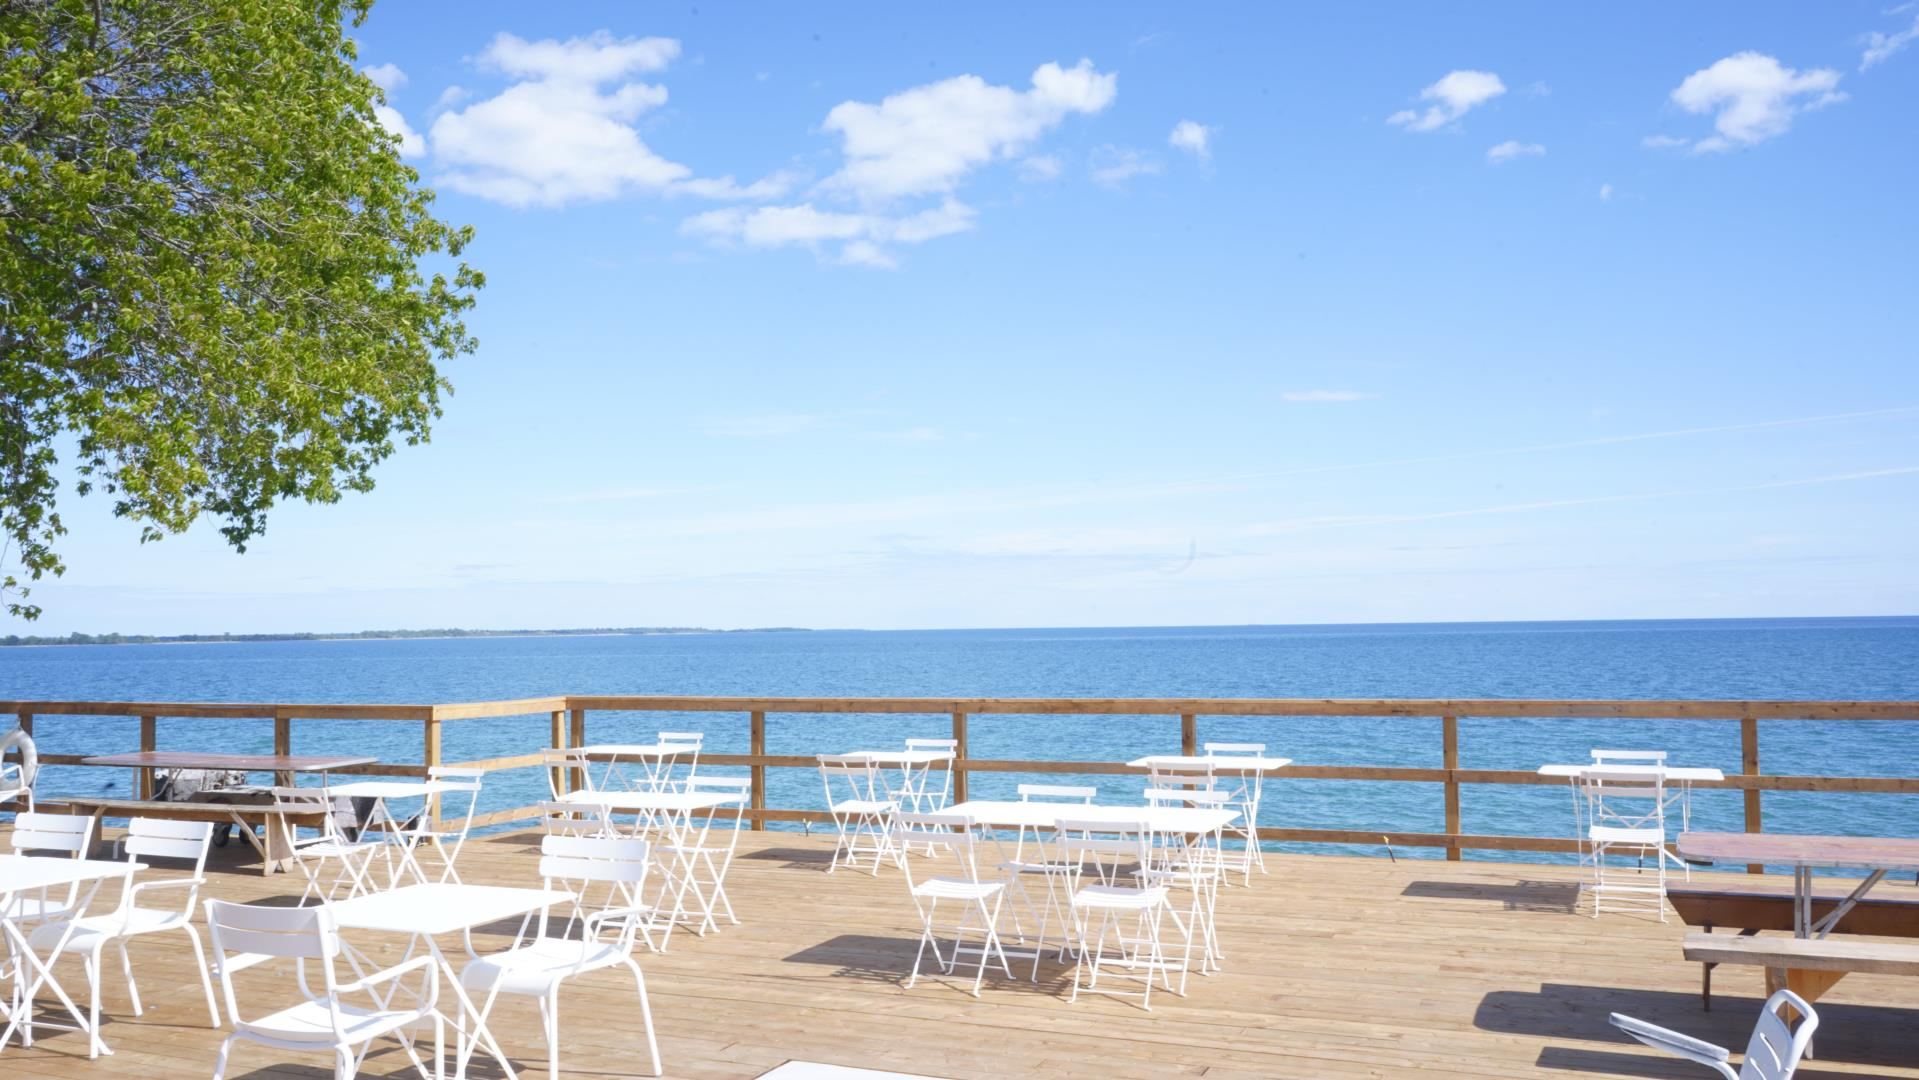 Lakeside Restaurant - Picture